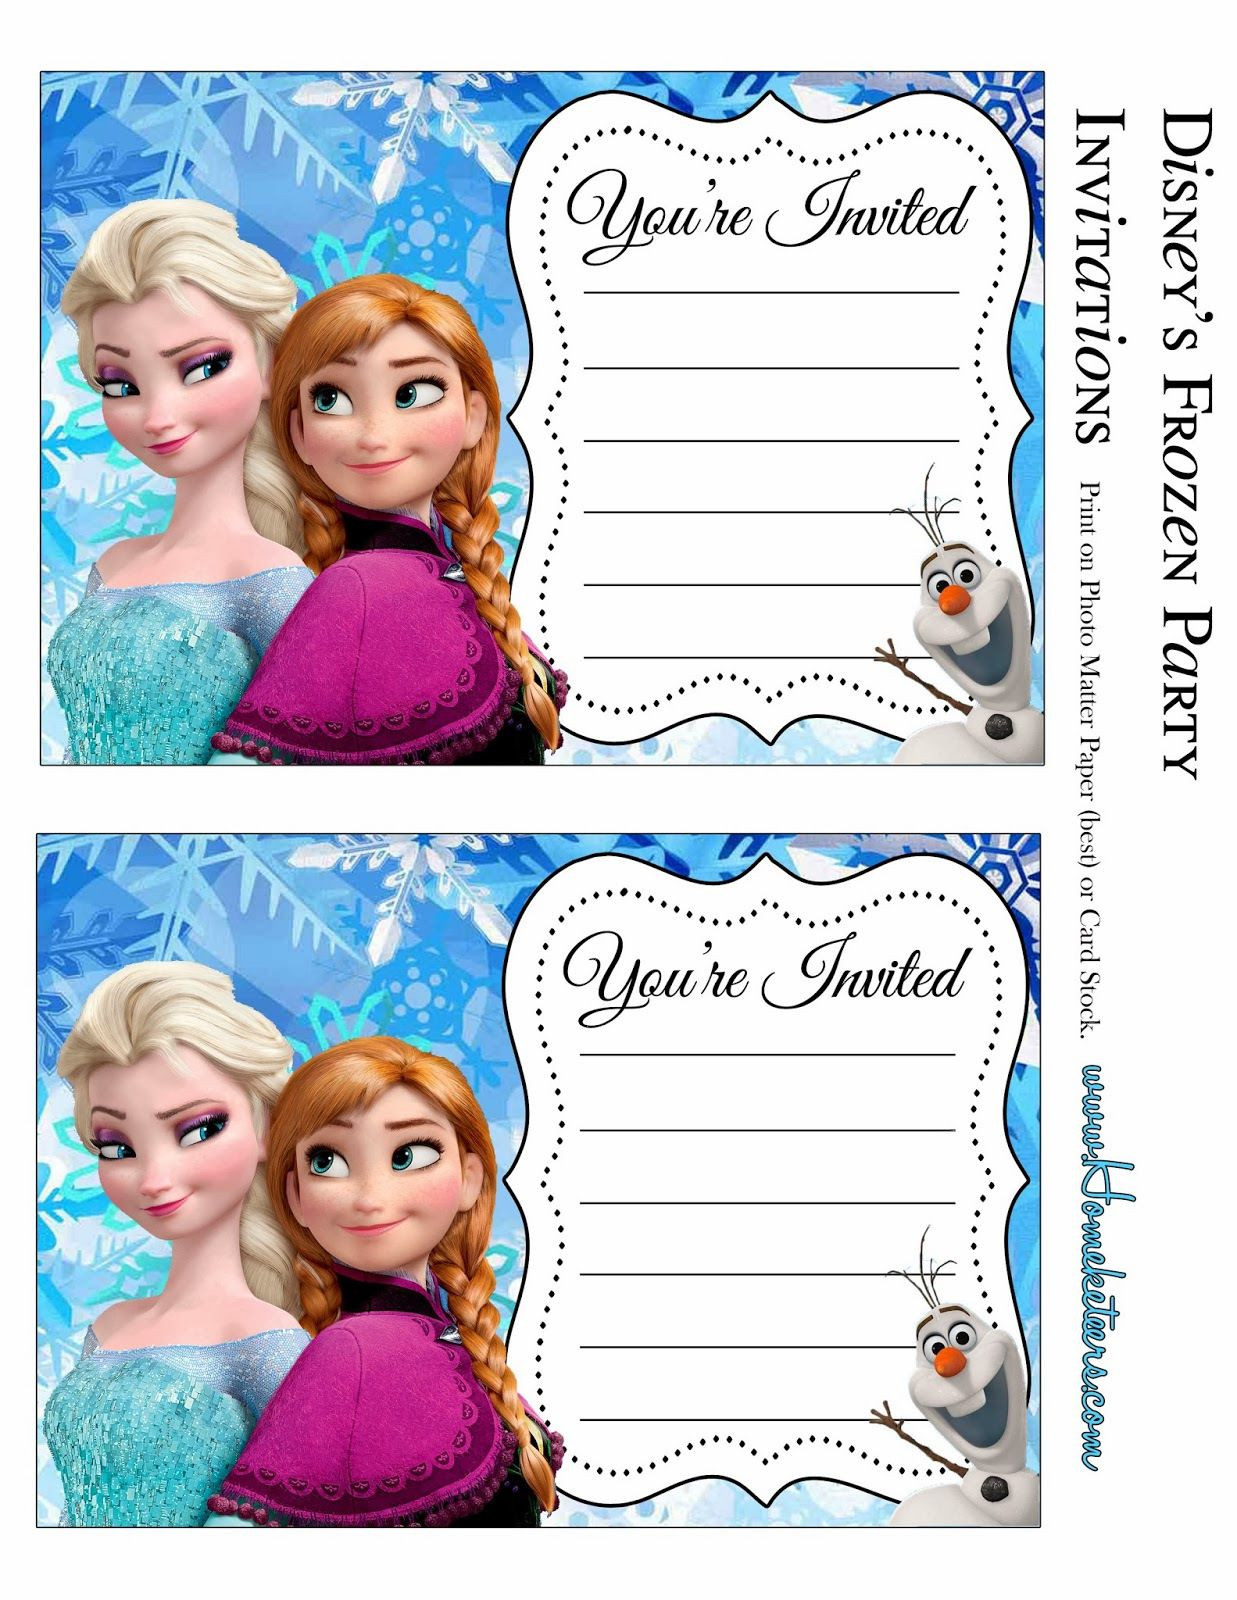 Frozen Invitations Printable Free Printables for the Disney Movie Frozen